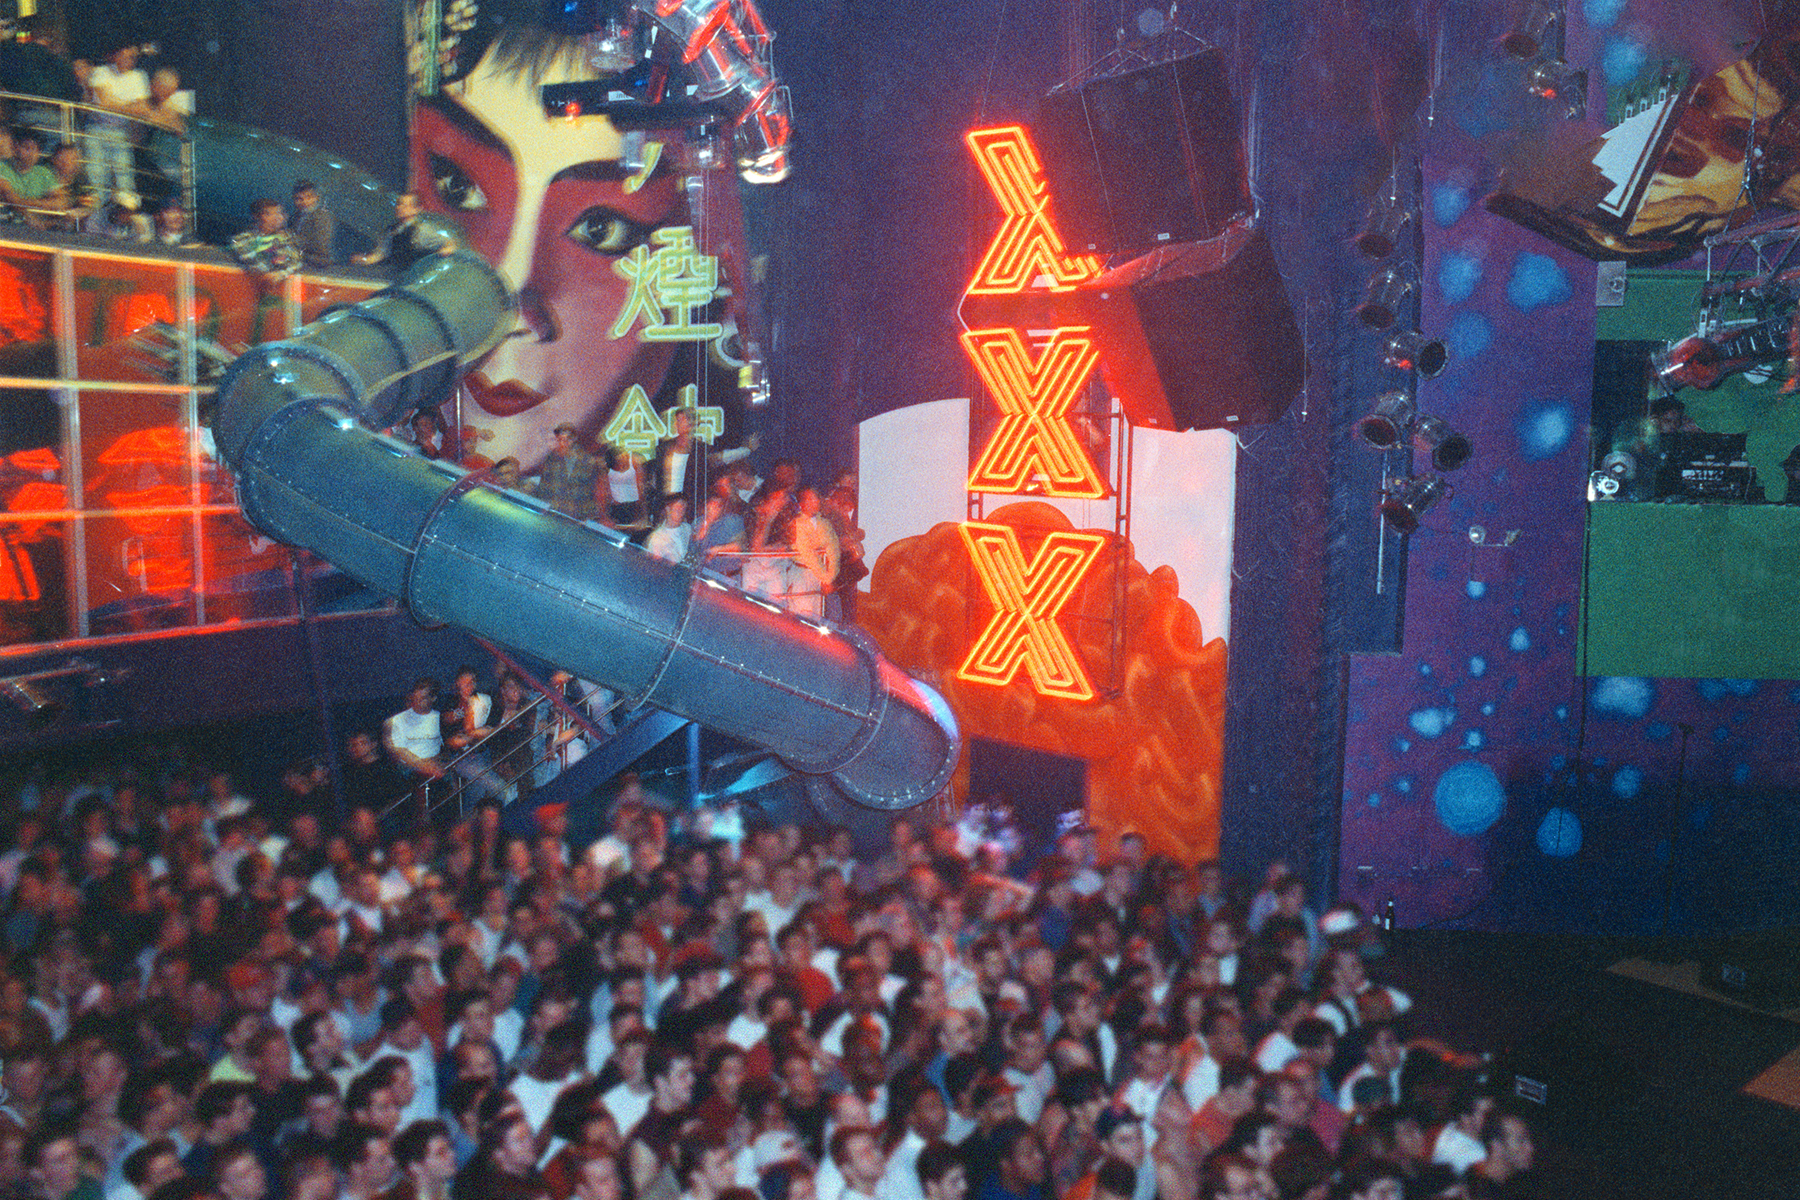 Main dance floor with mezzanine slide at Club USA, 1992.